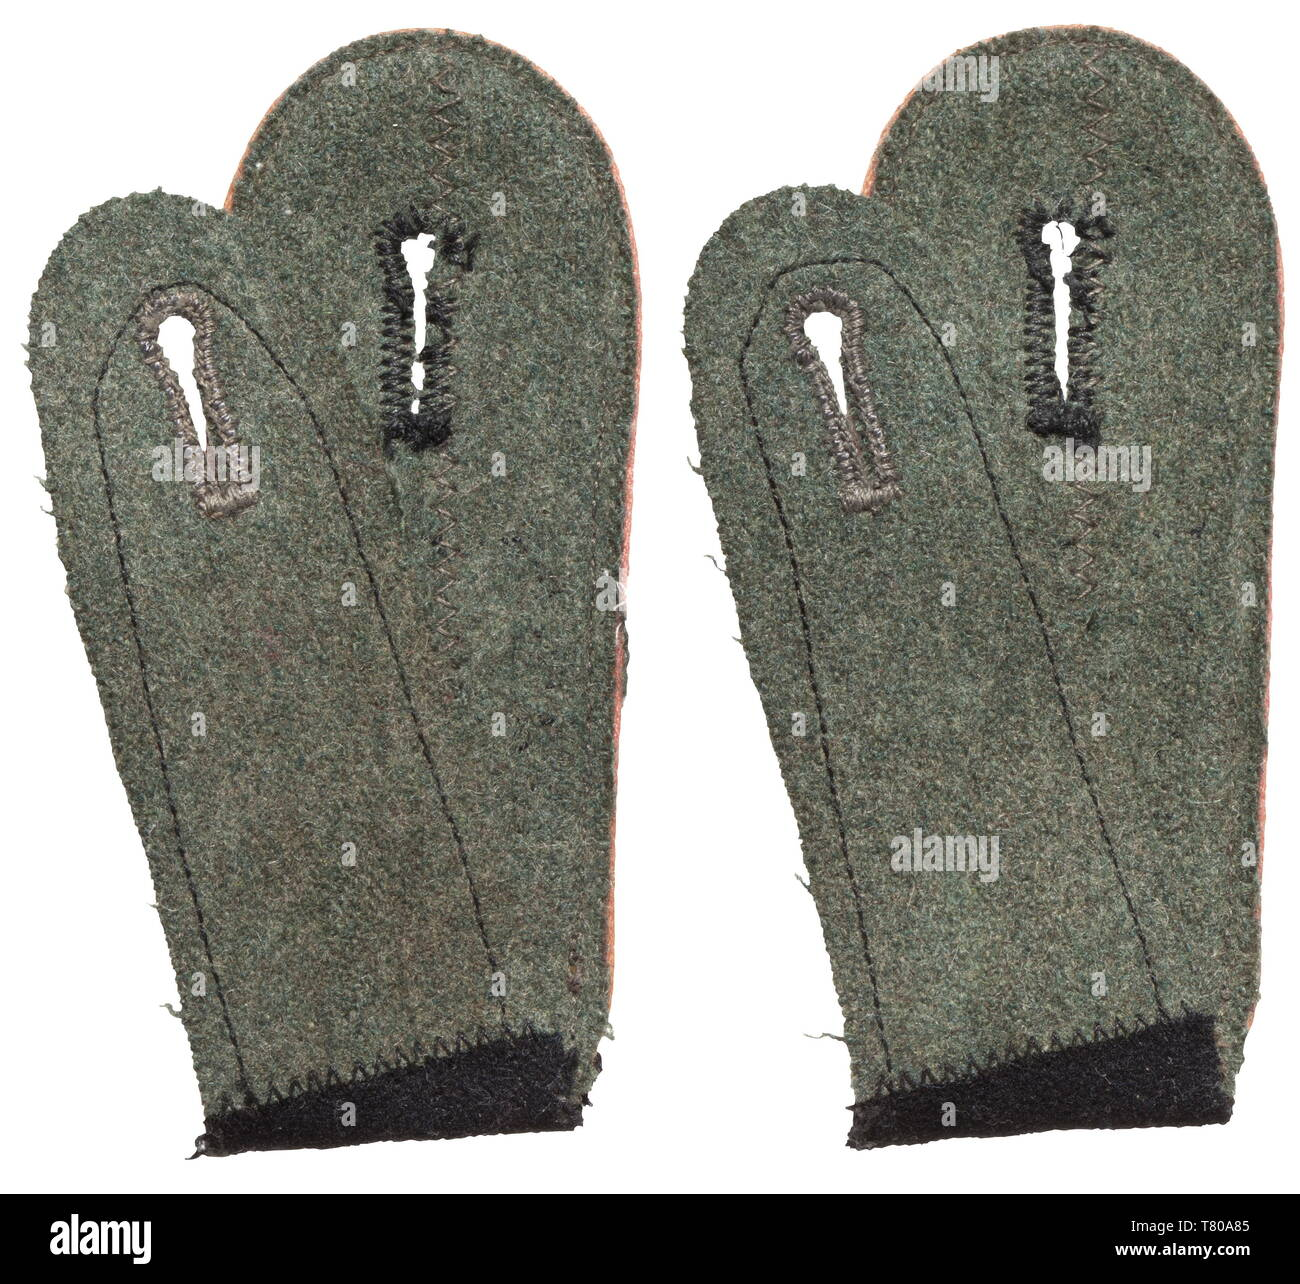 "A pair of shoulder boards for enlisted men of the Panzer troops in the 1st SS Panzer-Division ""Leibstandarte-SS Adolf Hitler"". Looped issue of black wool cloth with stitched-on machine-embroidered LAH logo (from slip-on straps?) and pink piping. Obviously used, with moth traces in the field-grey liner. historic, historical, 20th century, 1930s, 1940s, secret service, security service, secret services, security services, police, armed service, armed services, NS, National Socialism, Nazism, Third Reich, German Reich, Germany, utensil, piece of equipment, utensils, object, ob, Editorial-Use-Only Stock Photo"